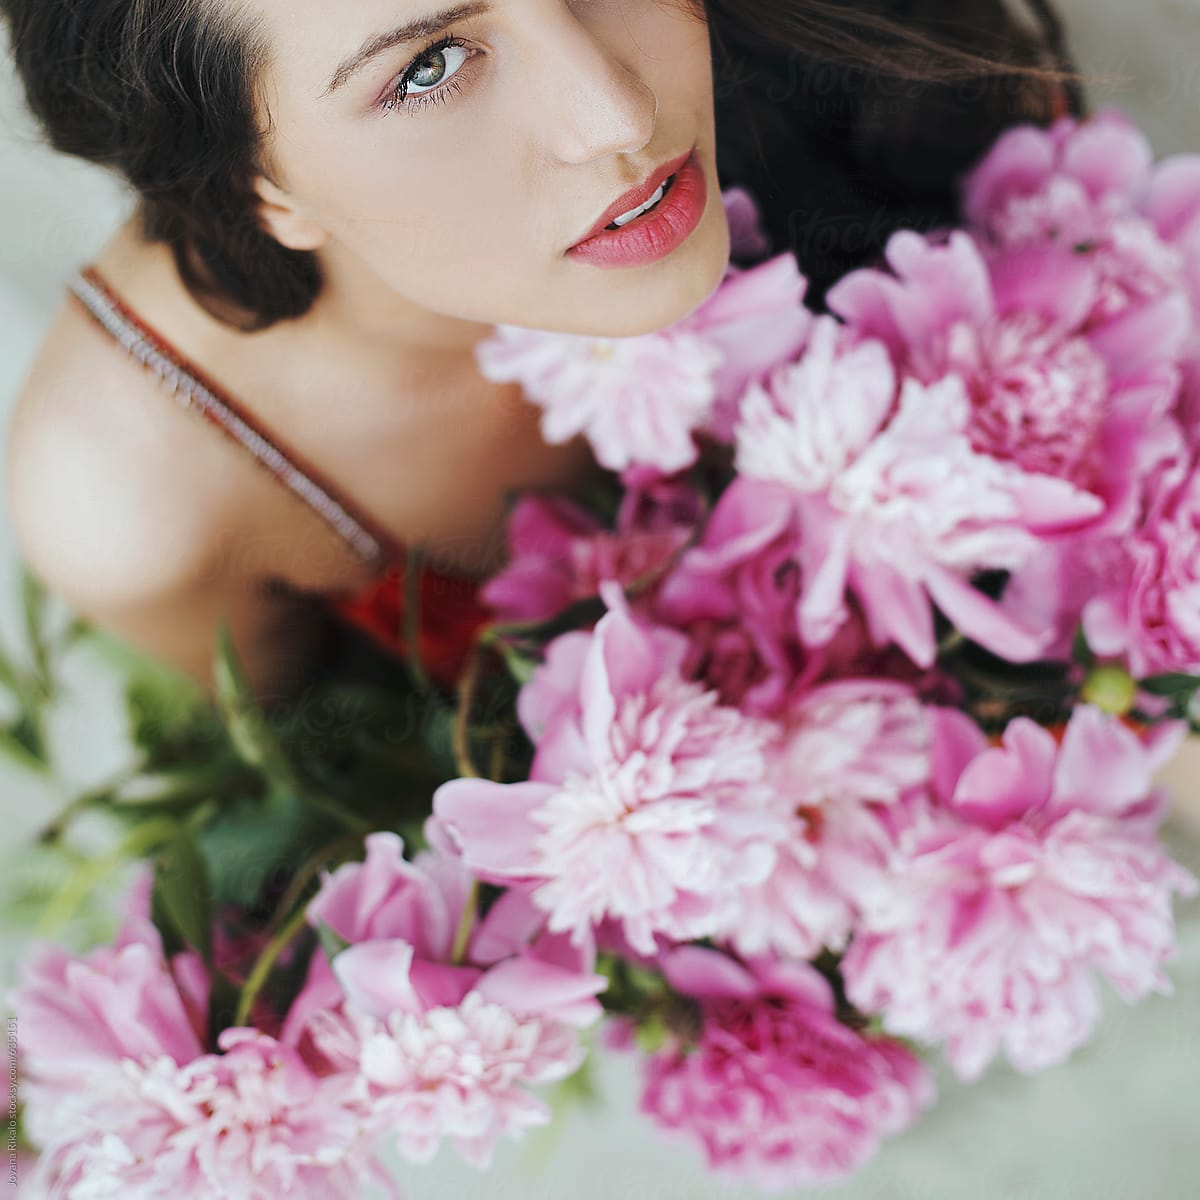 Portrait of a beautiful young woman with peonies flowers stocksy portrait of a beautiful young woman with peonies flowers by jovana rikalo for stocksy united izmirmasajfo